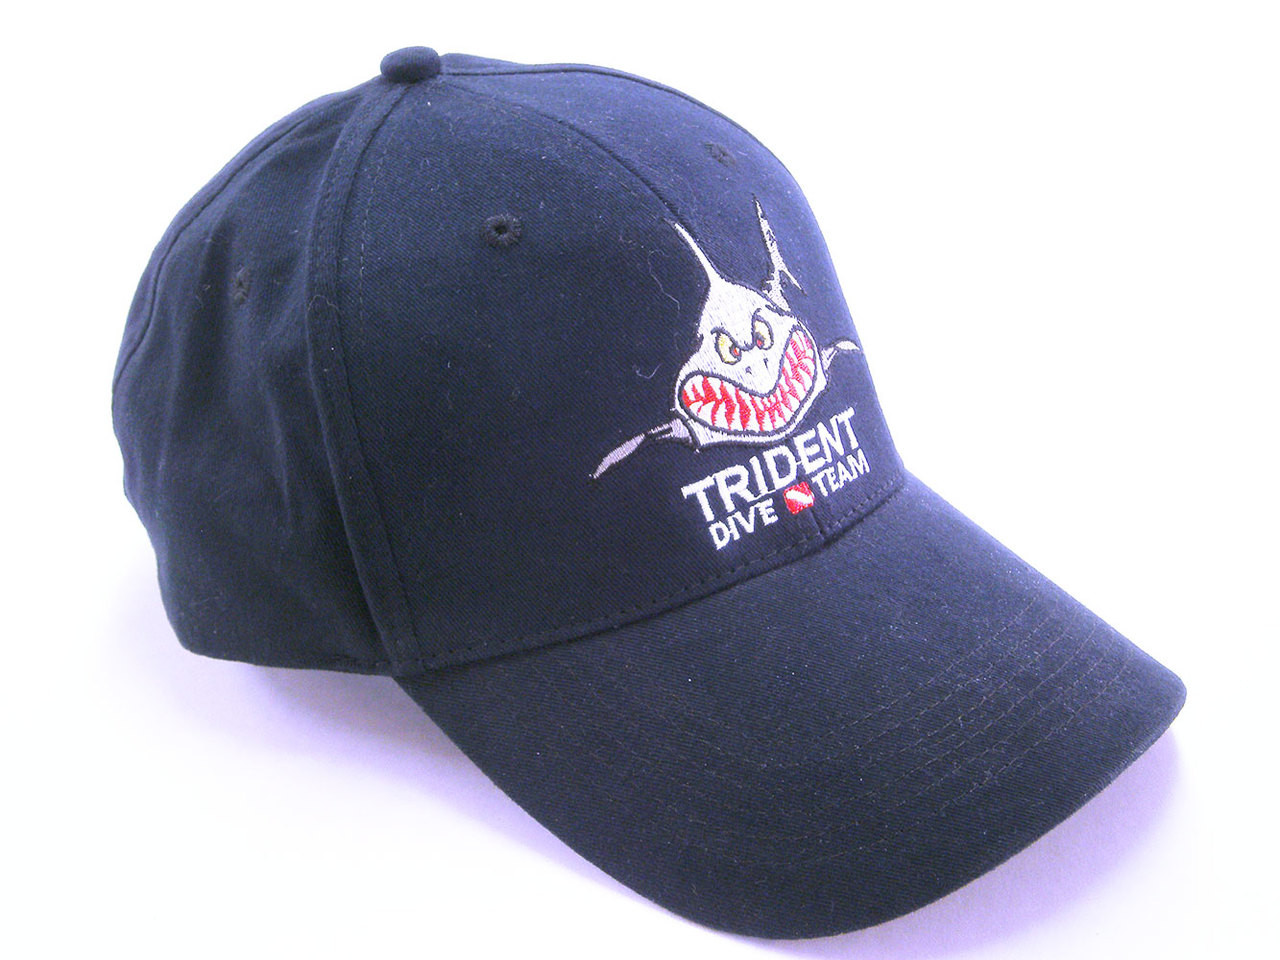 Trident Angry Shark Scuba Diving Ball Cap Dive Hat Dark Blue   Faded ... 7ffbba093eb